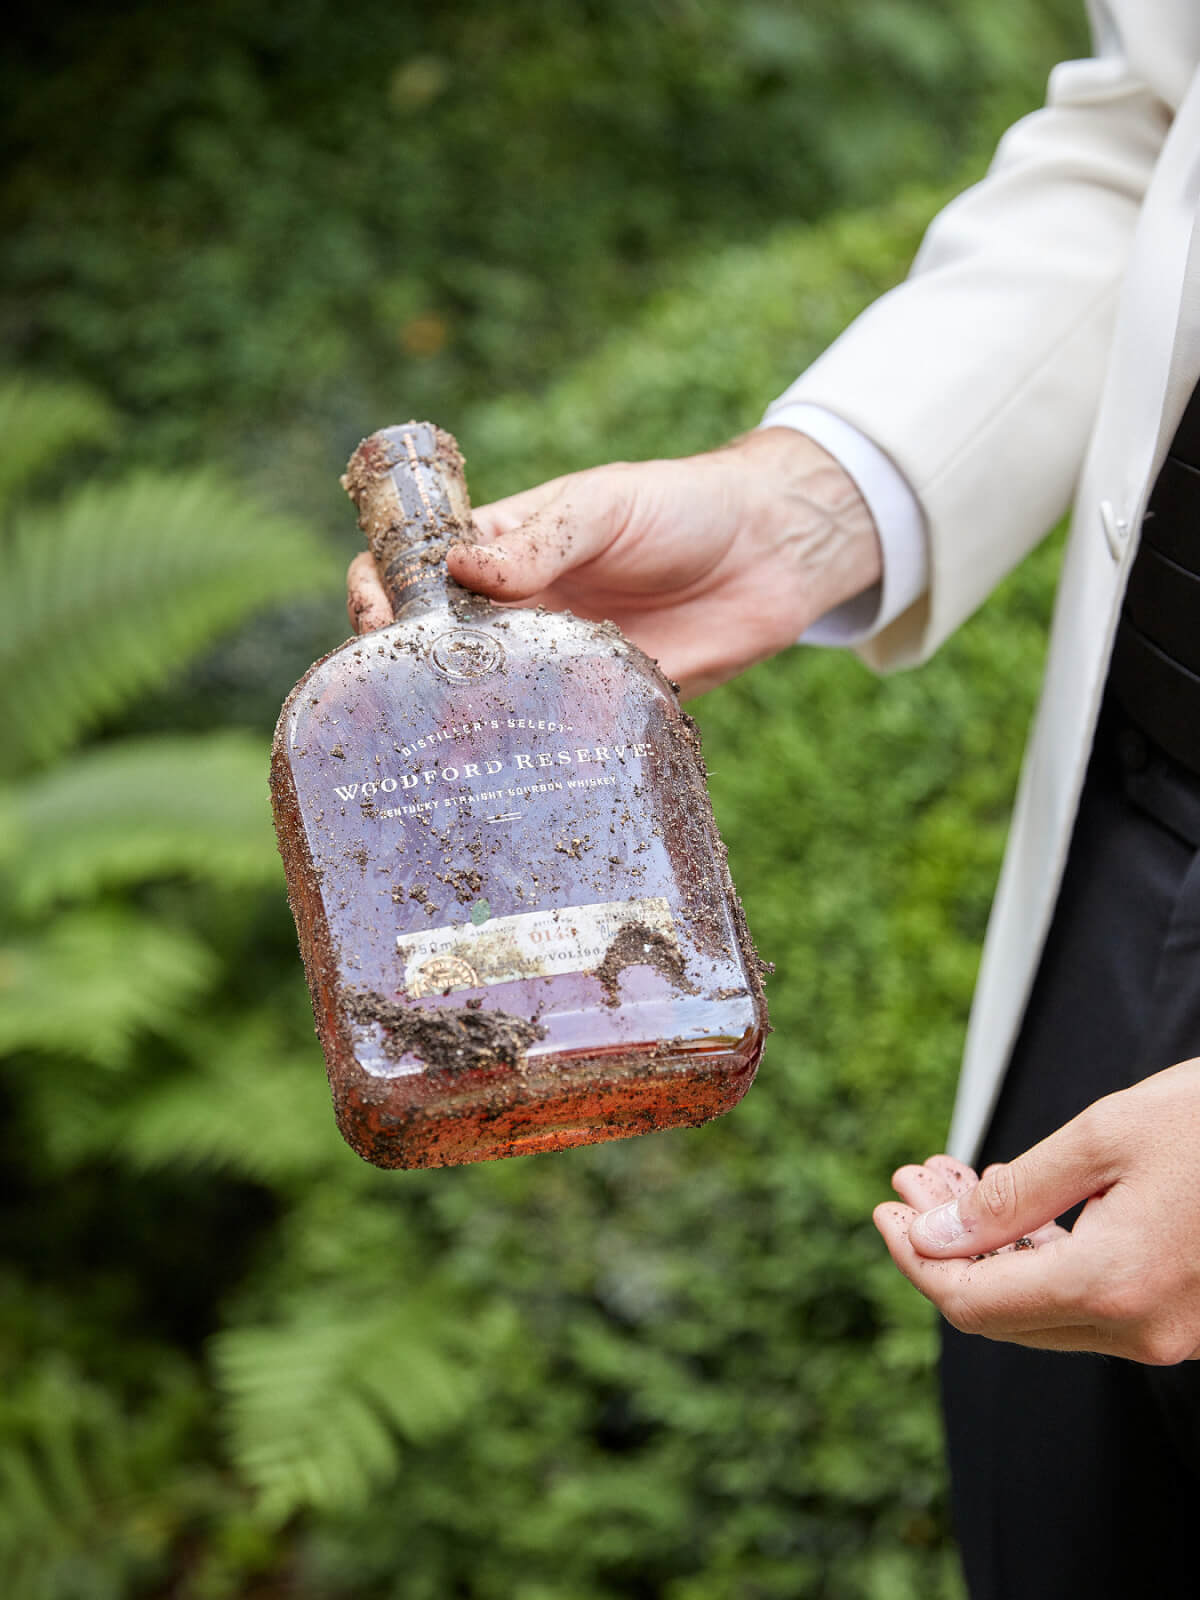 Unburying a bottle of Woodford Reserve